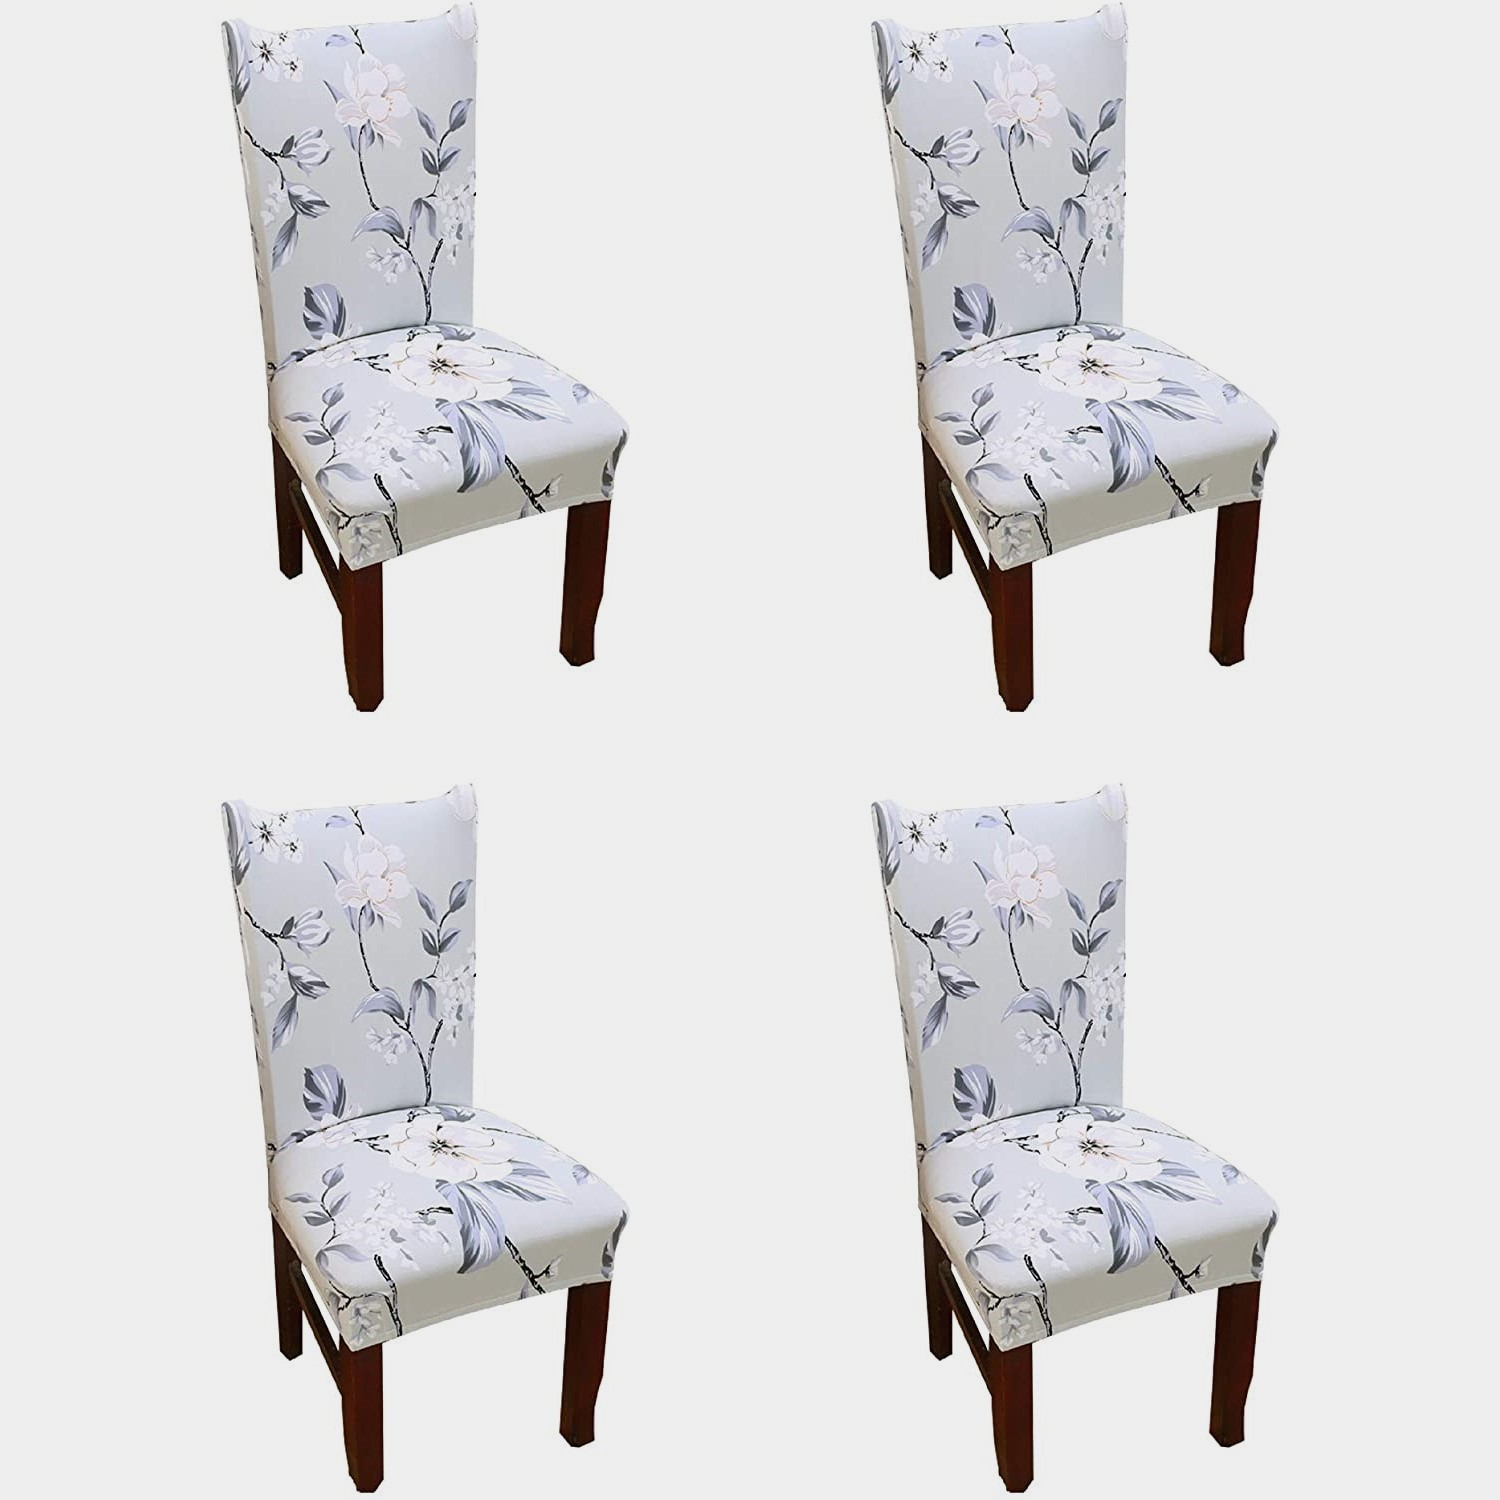 Picture of: Argstar 4 Pack Chair Covers Stretch Armless Chair Slipcover For Dining Room Seat Cushion Argstar